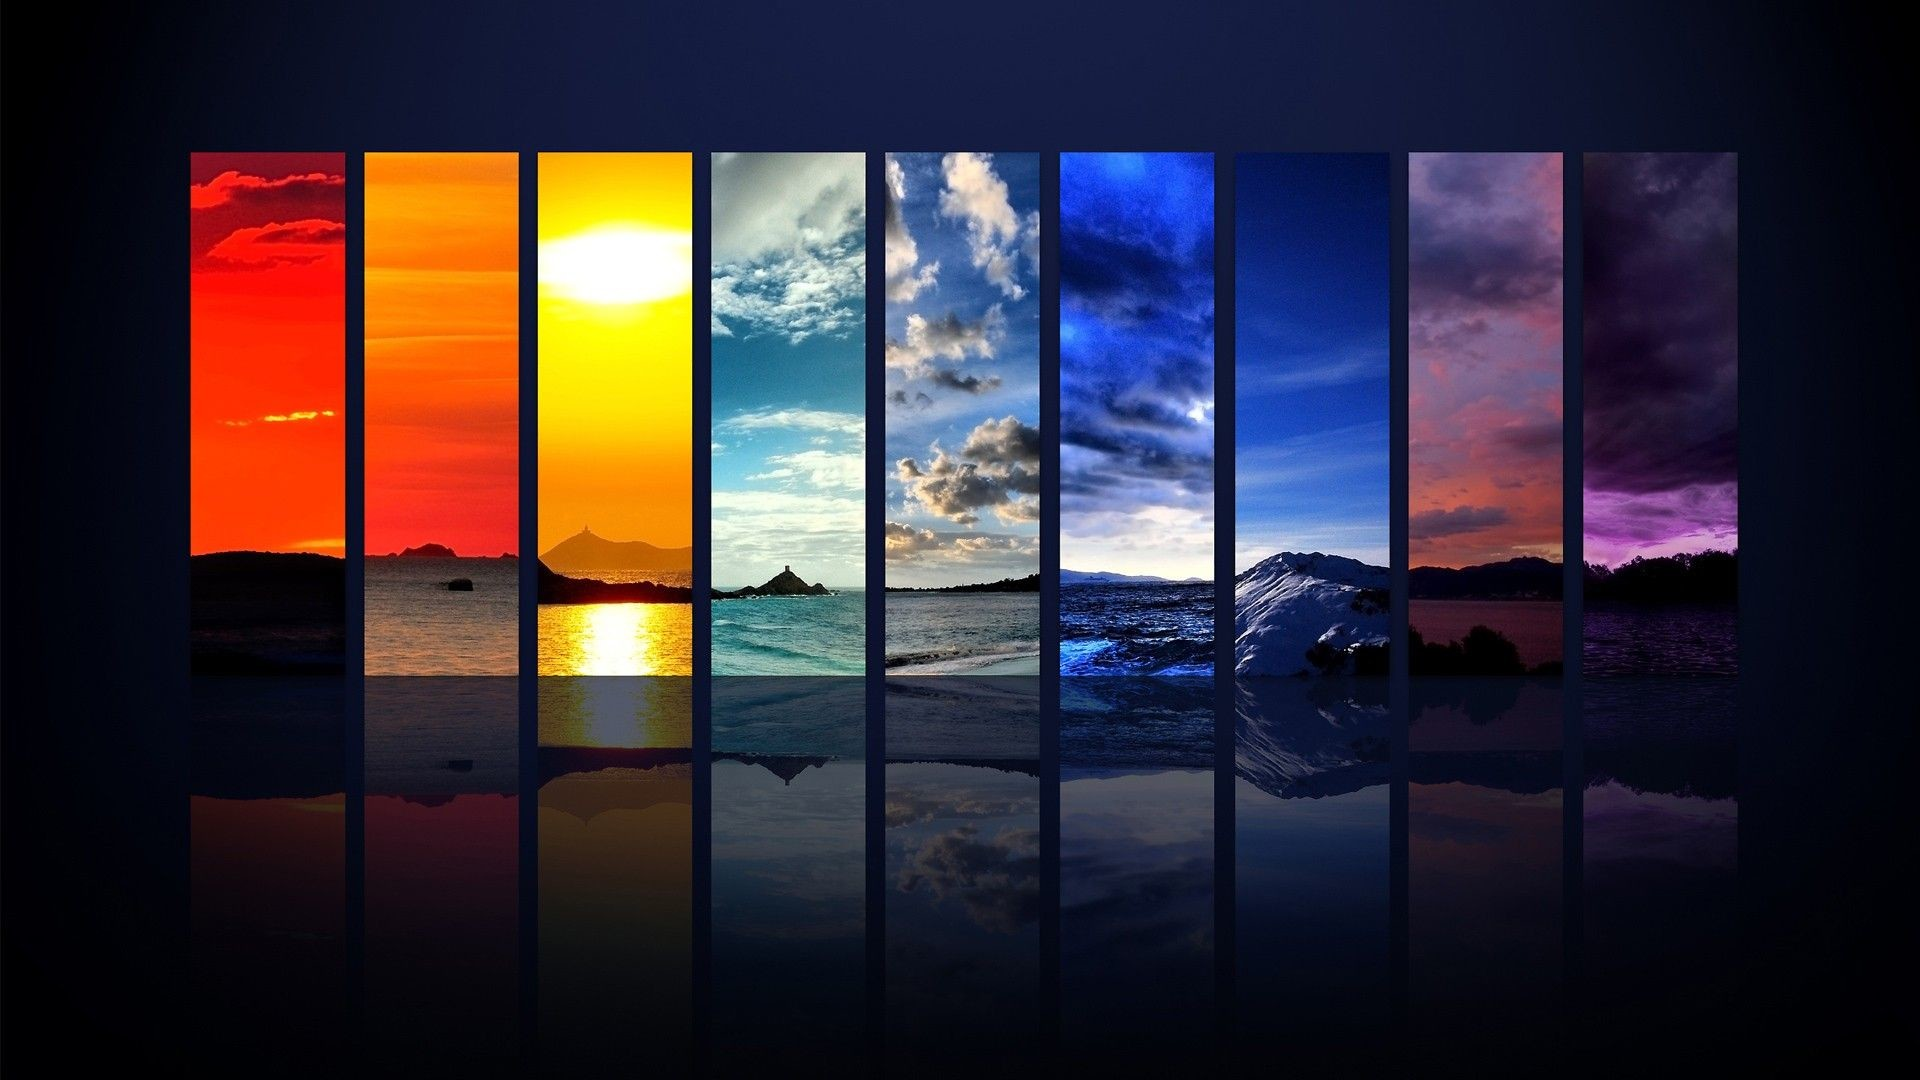 Free Download 70 Cool Pc Wallpapers On Wallpaperplay 1920x1080 For Your Desktop Mobile Tablet Explore 33 Wallpaper For Pc Cool Cool Wallpapers For Pc Cool Backgrounds For Pc Wallpaper For Pc Cool